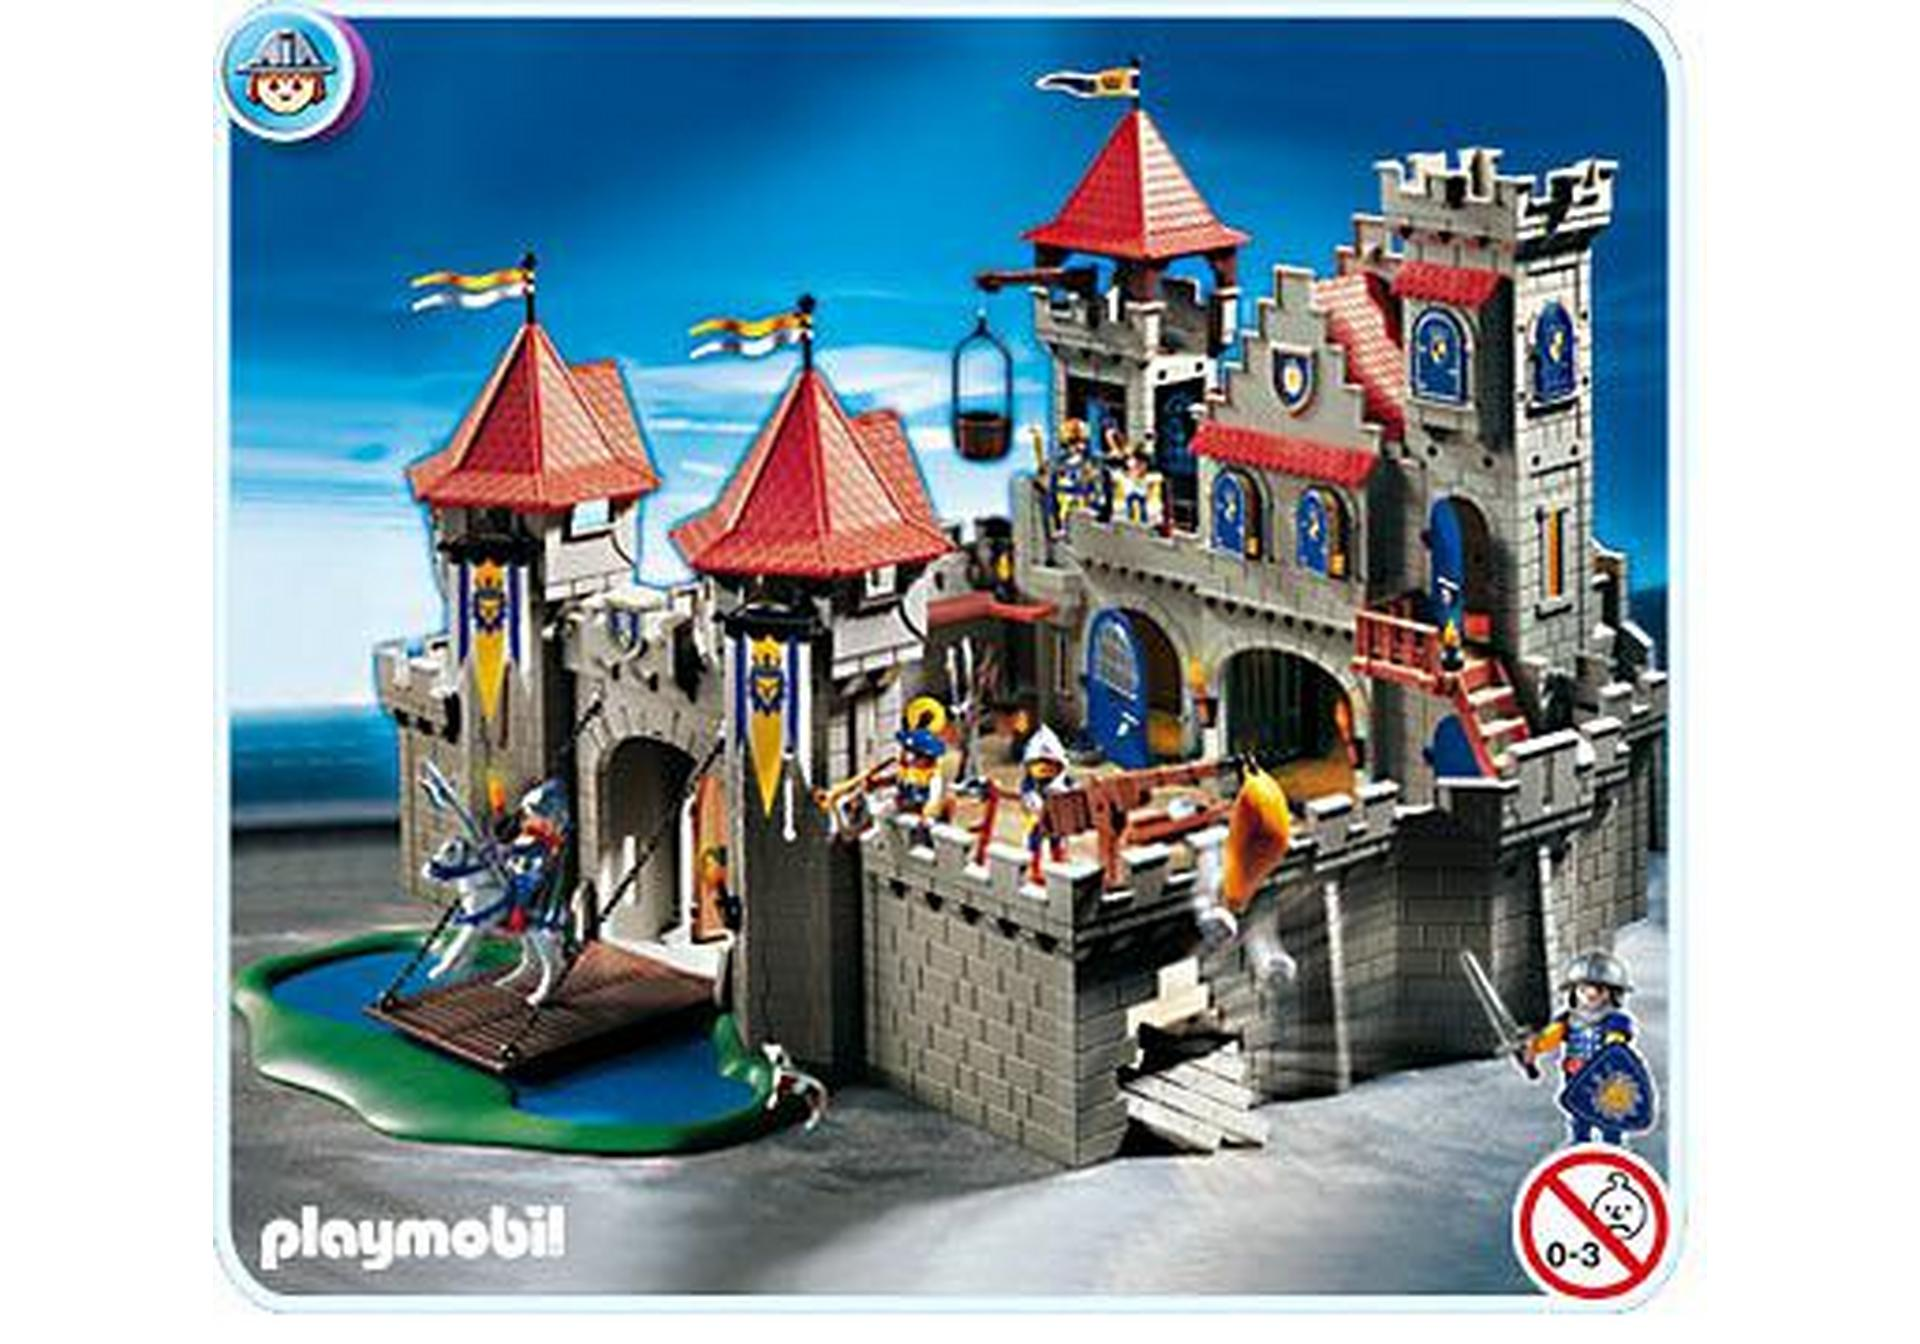 Dollhouse playmobil for Piscine playmobil 3205